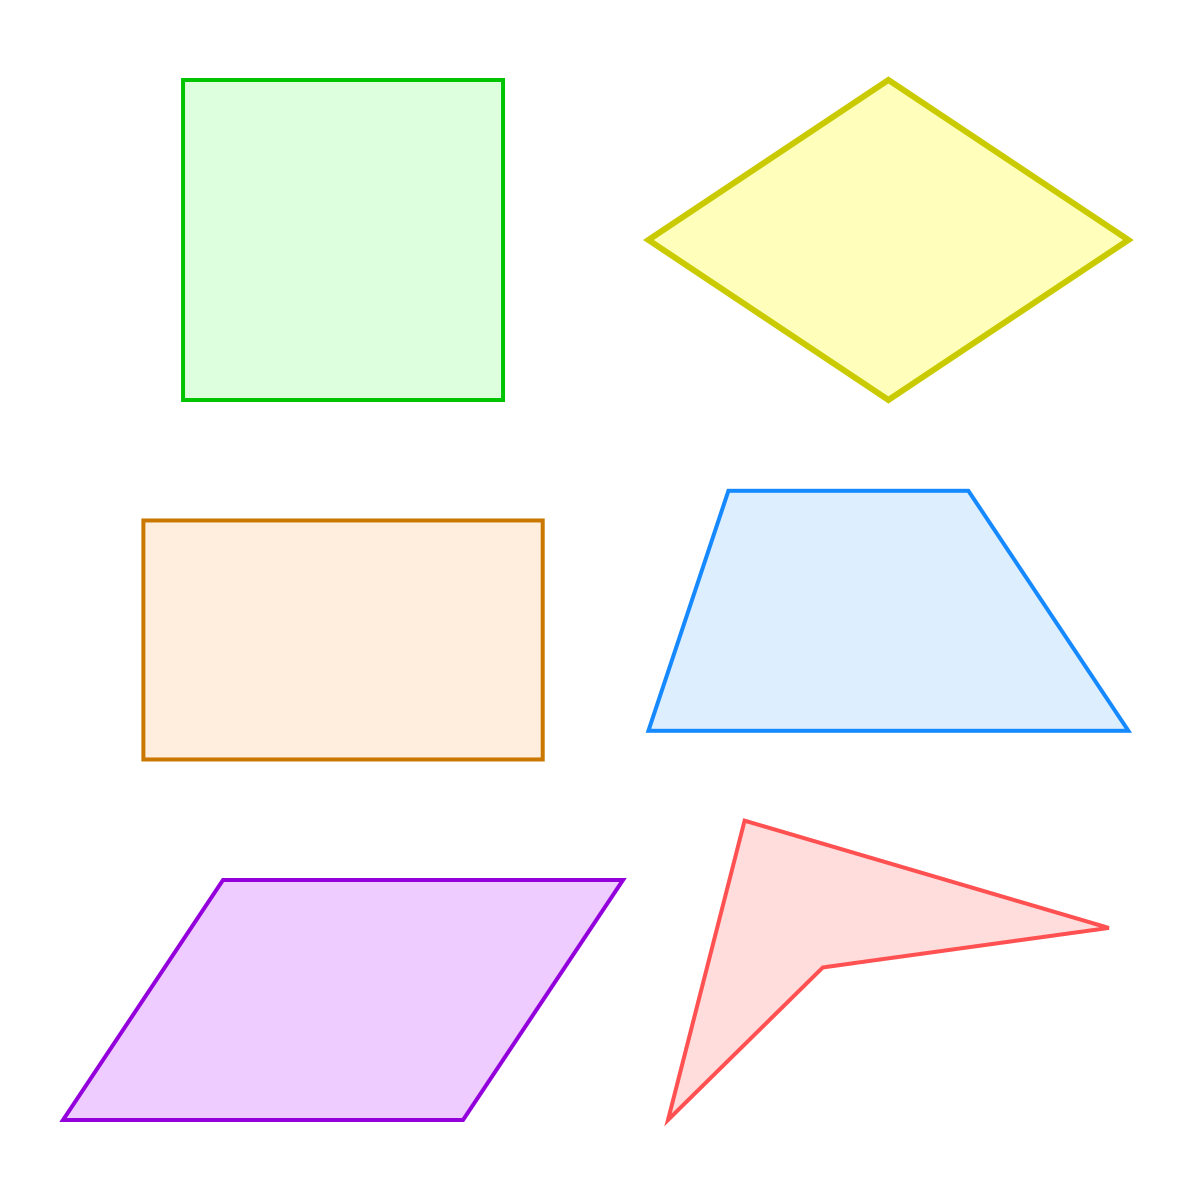 Square Clipart Quadrilateral Shape Square Quadrilateral